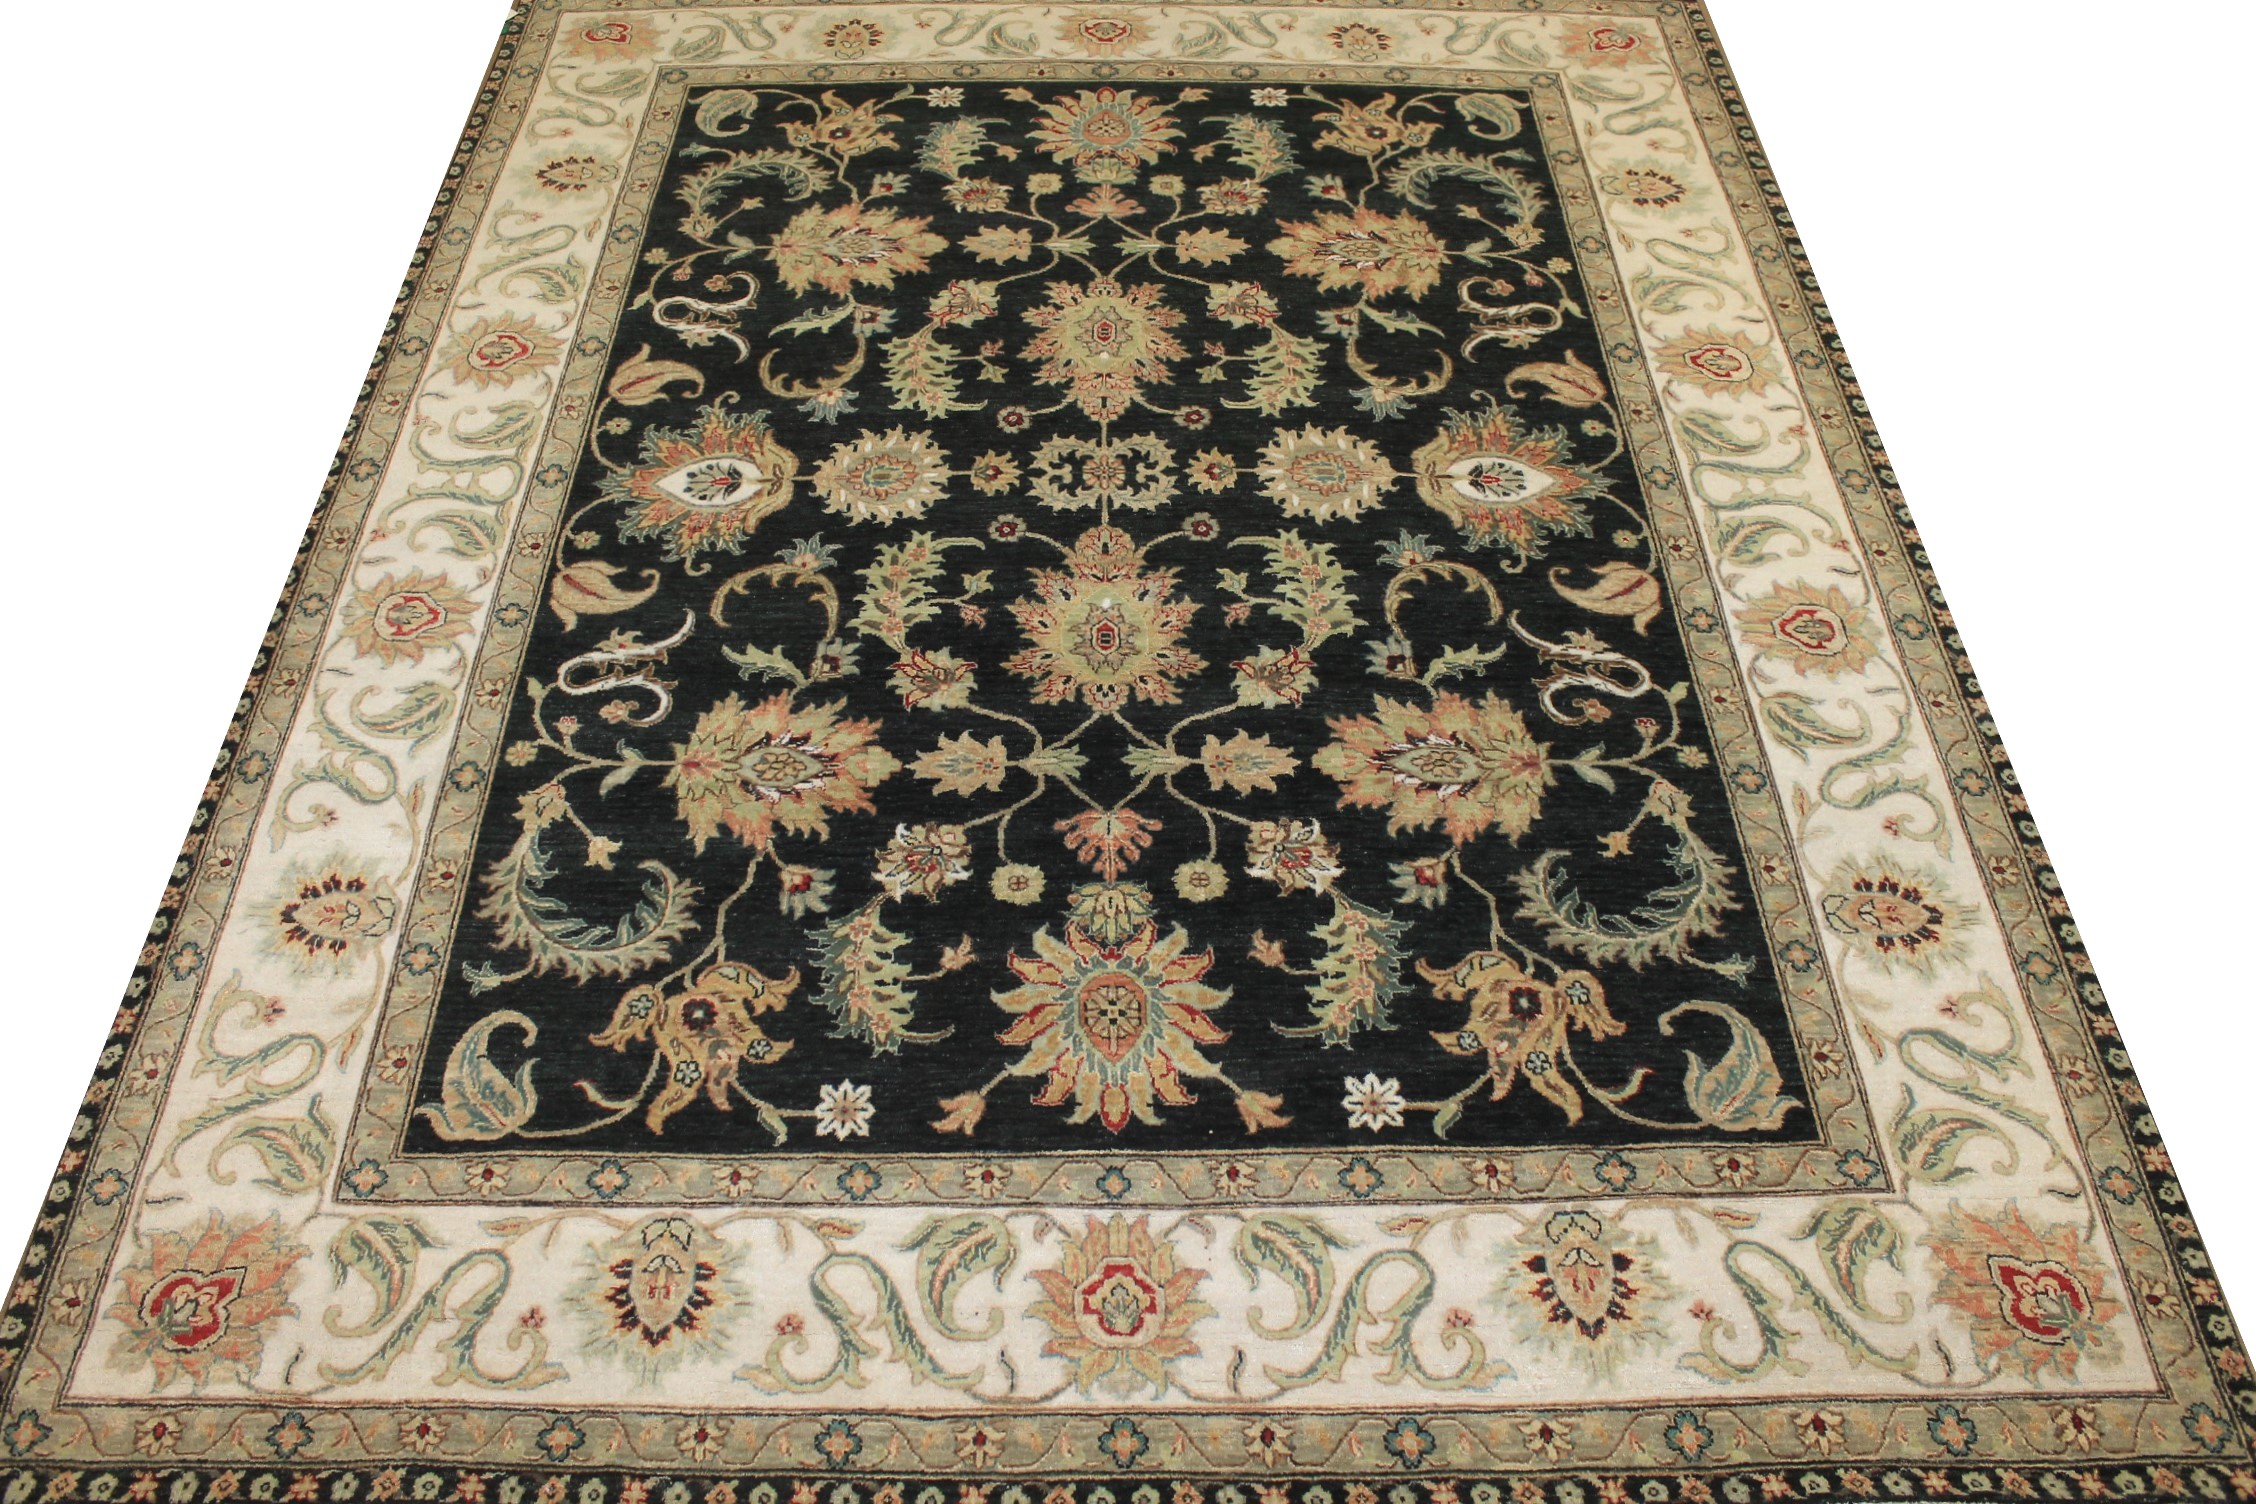 8x10 Traditional Hand Knotted Wool Area Rug - MR024942